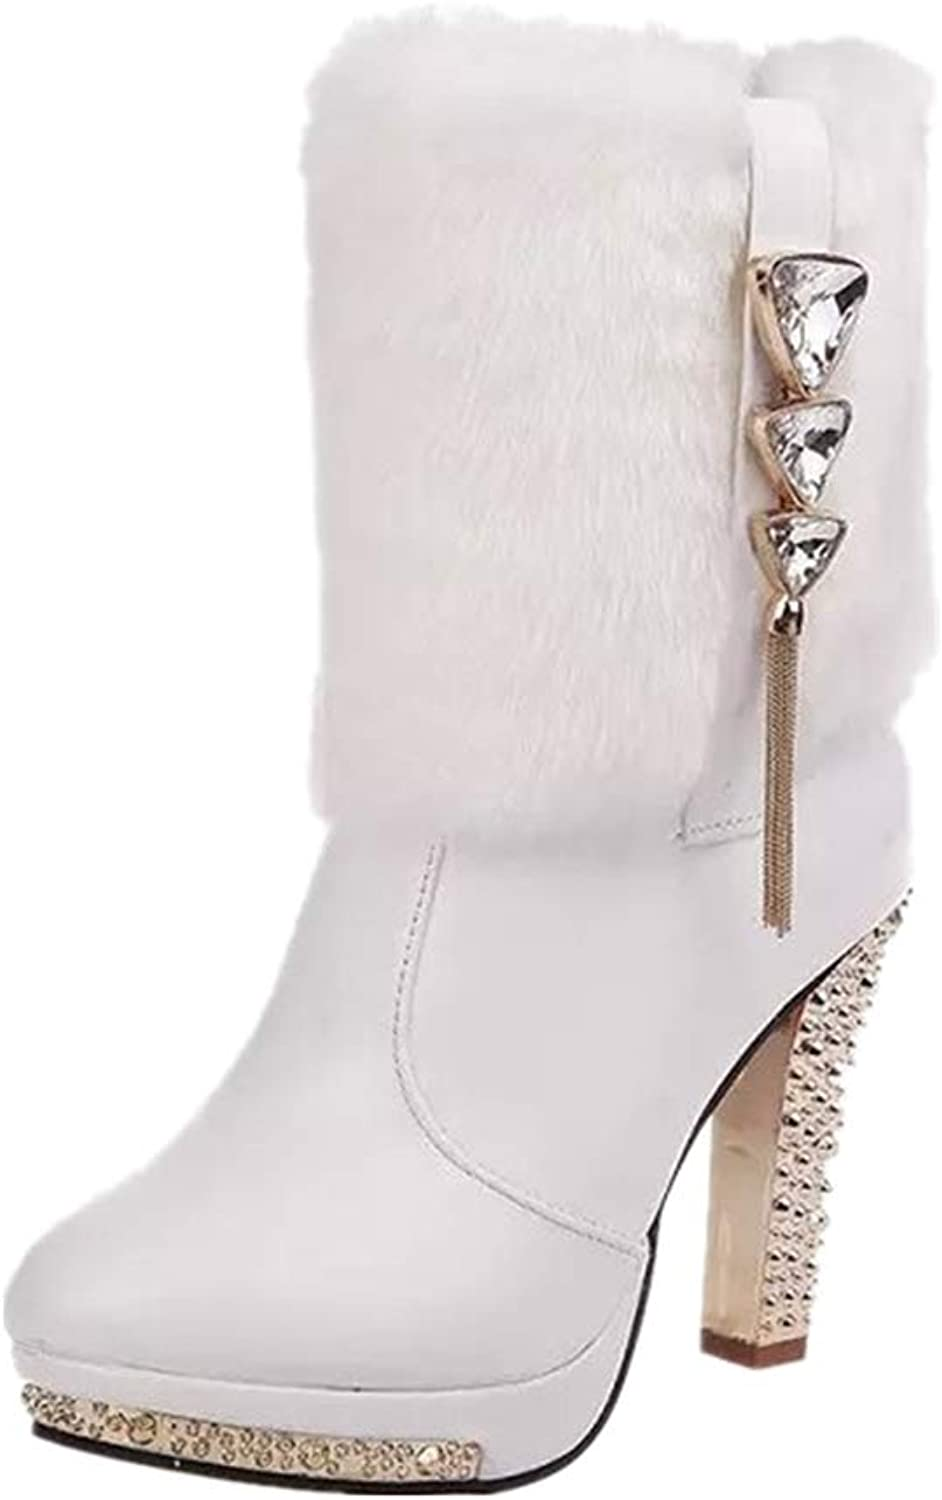 LingGT Sexy Boots Women Ankle High Heel Beaded shoes (color   White, Size   CA 8)